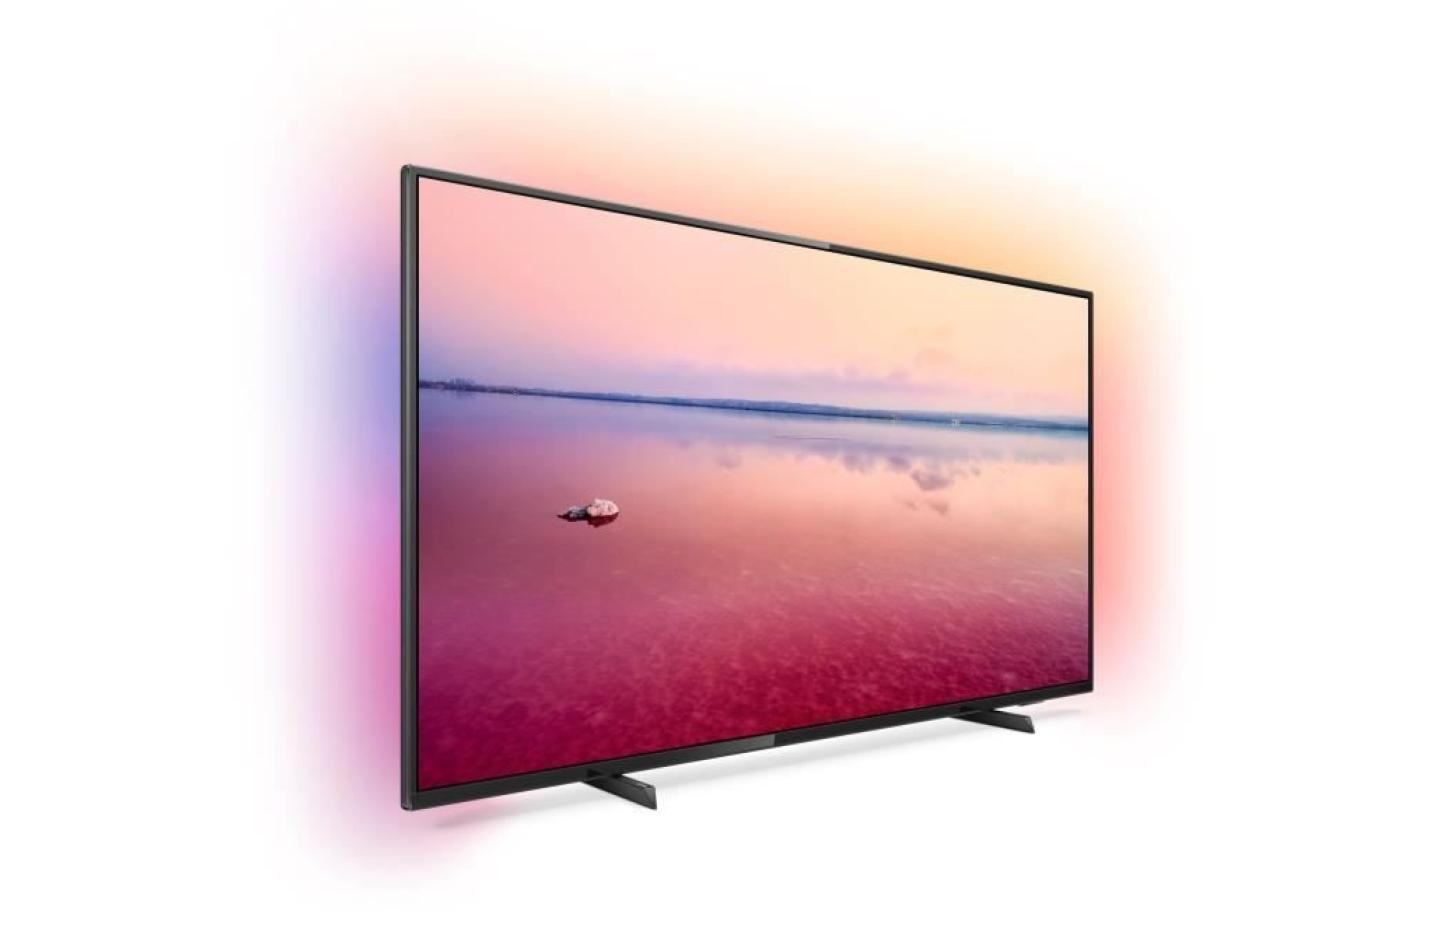 Philips : TV 43″ ambilight et 4K, HDR, Dolby Vision/Atmos pour 319 euros seulement